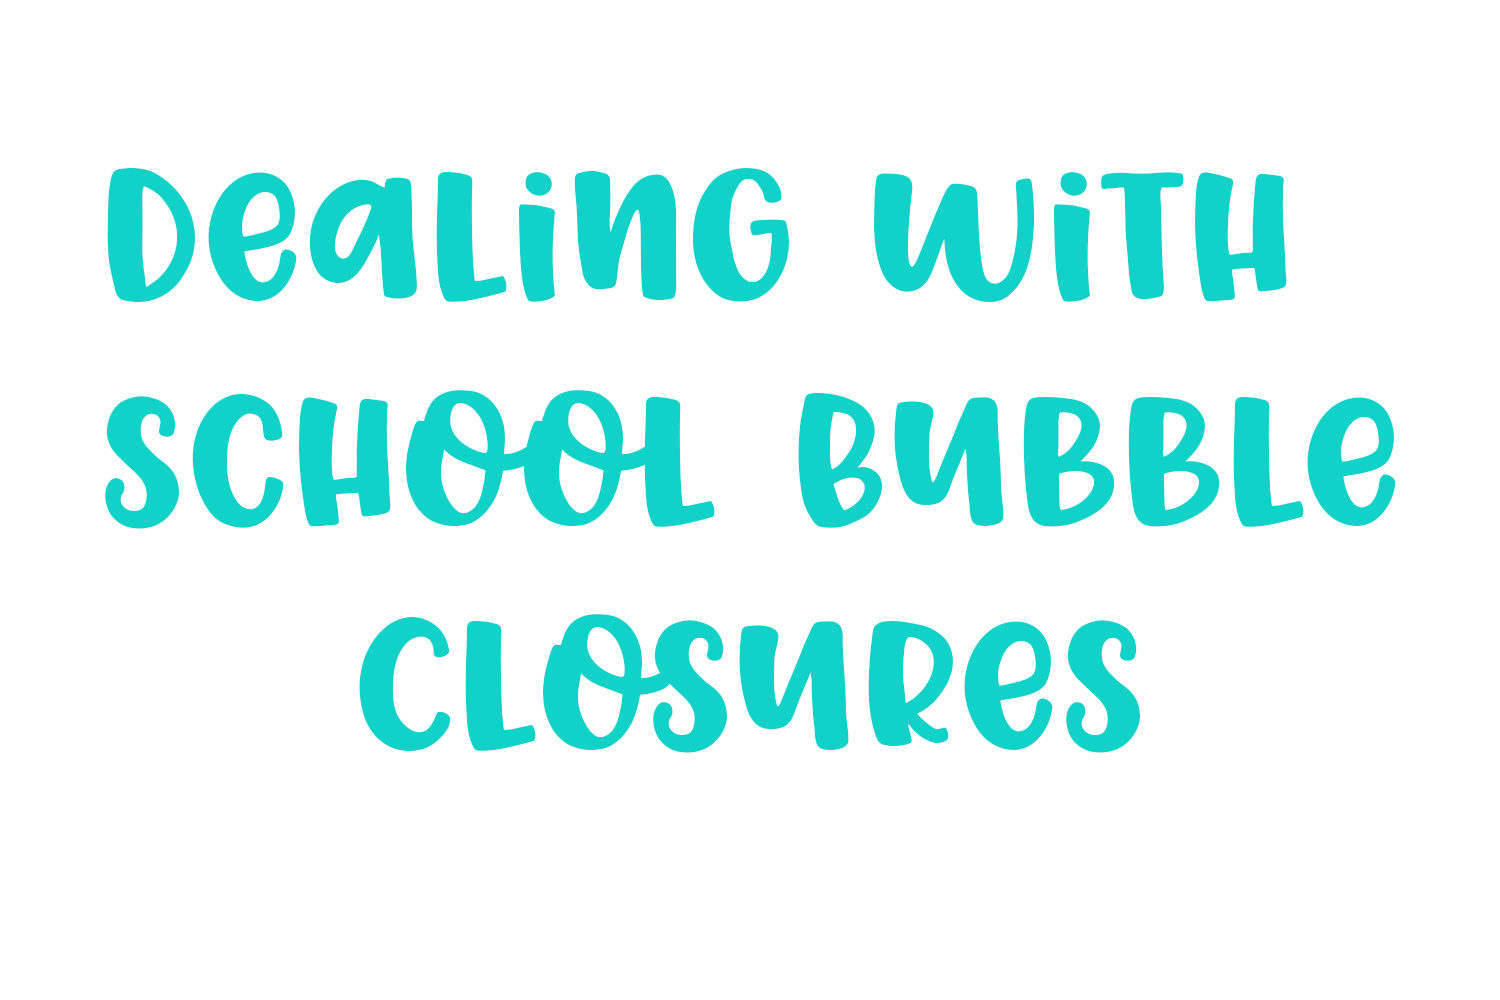 Dealing with school bubble closures